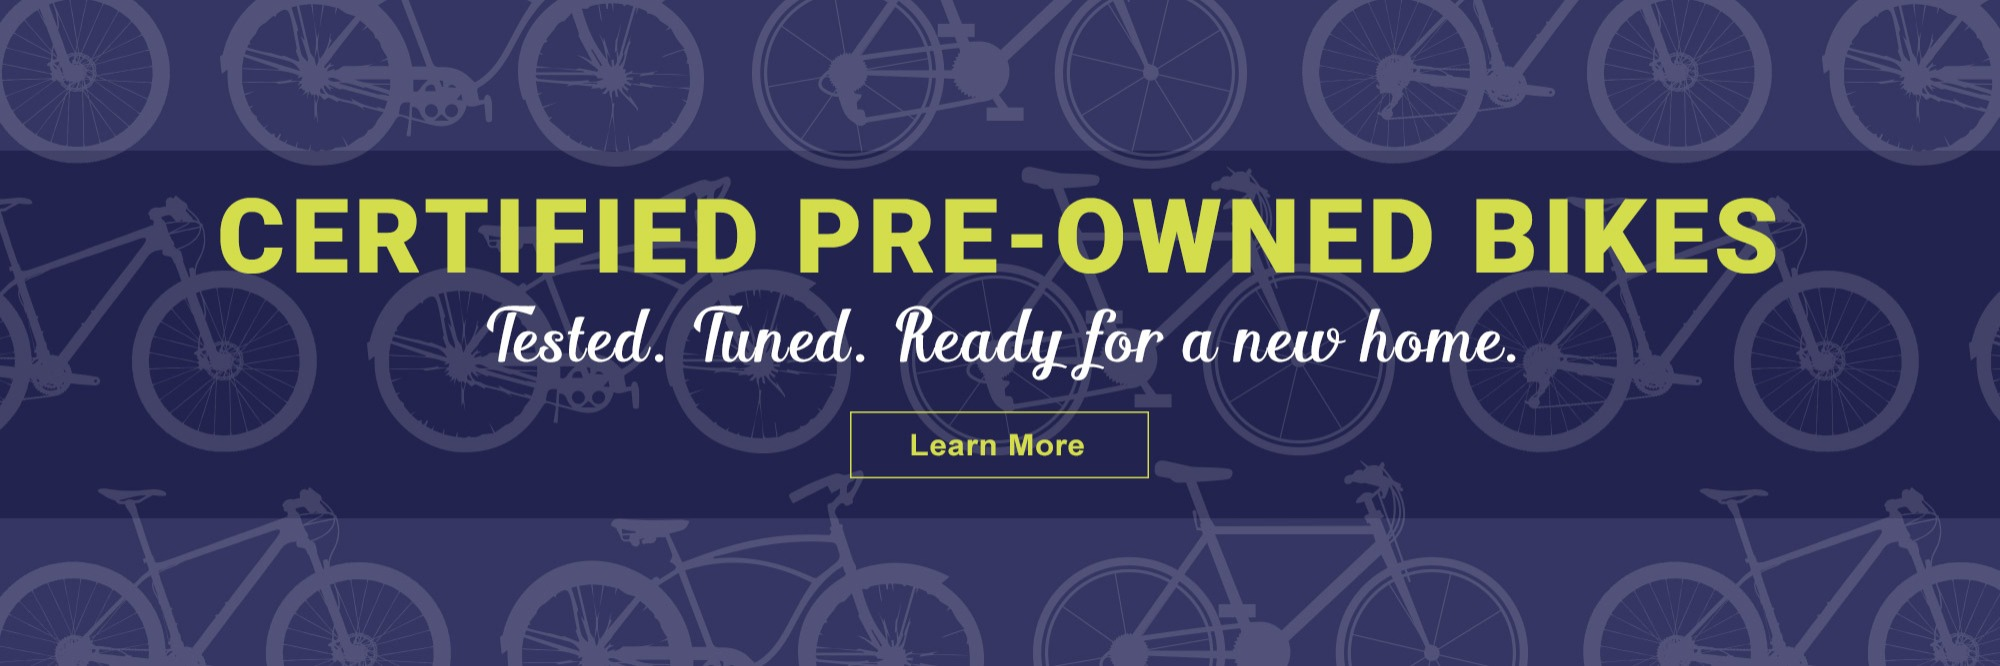 Certified Pre-Owned Bikes